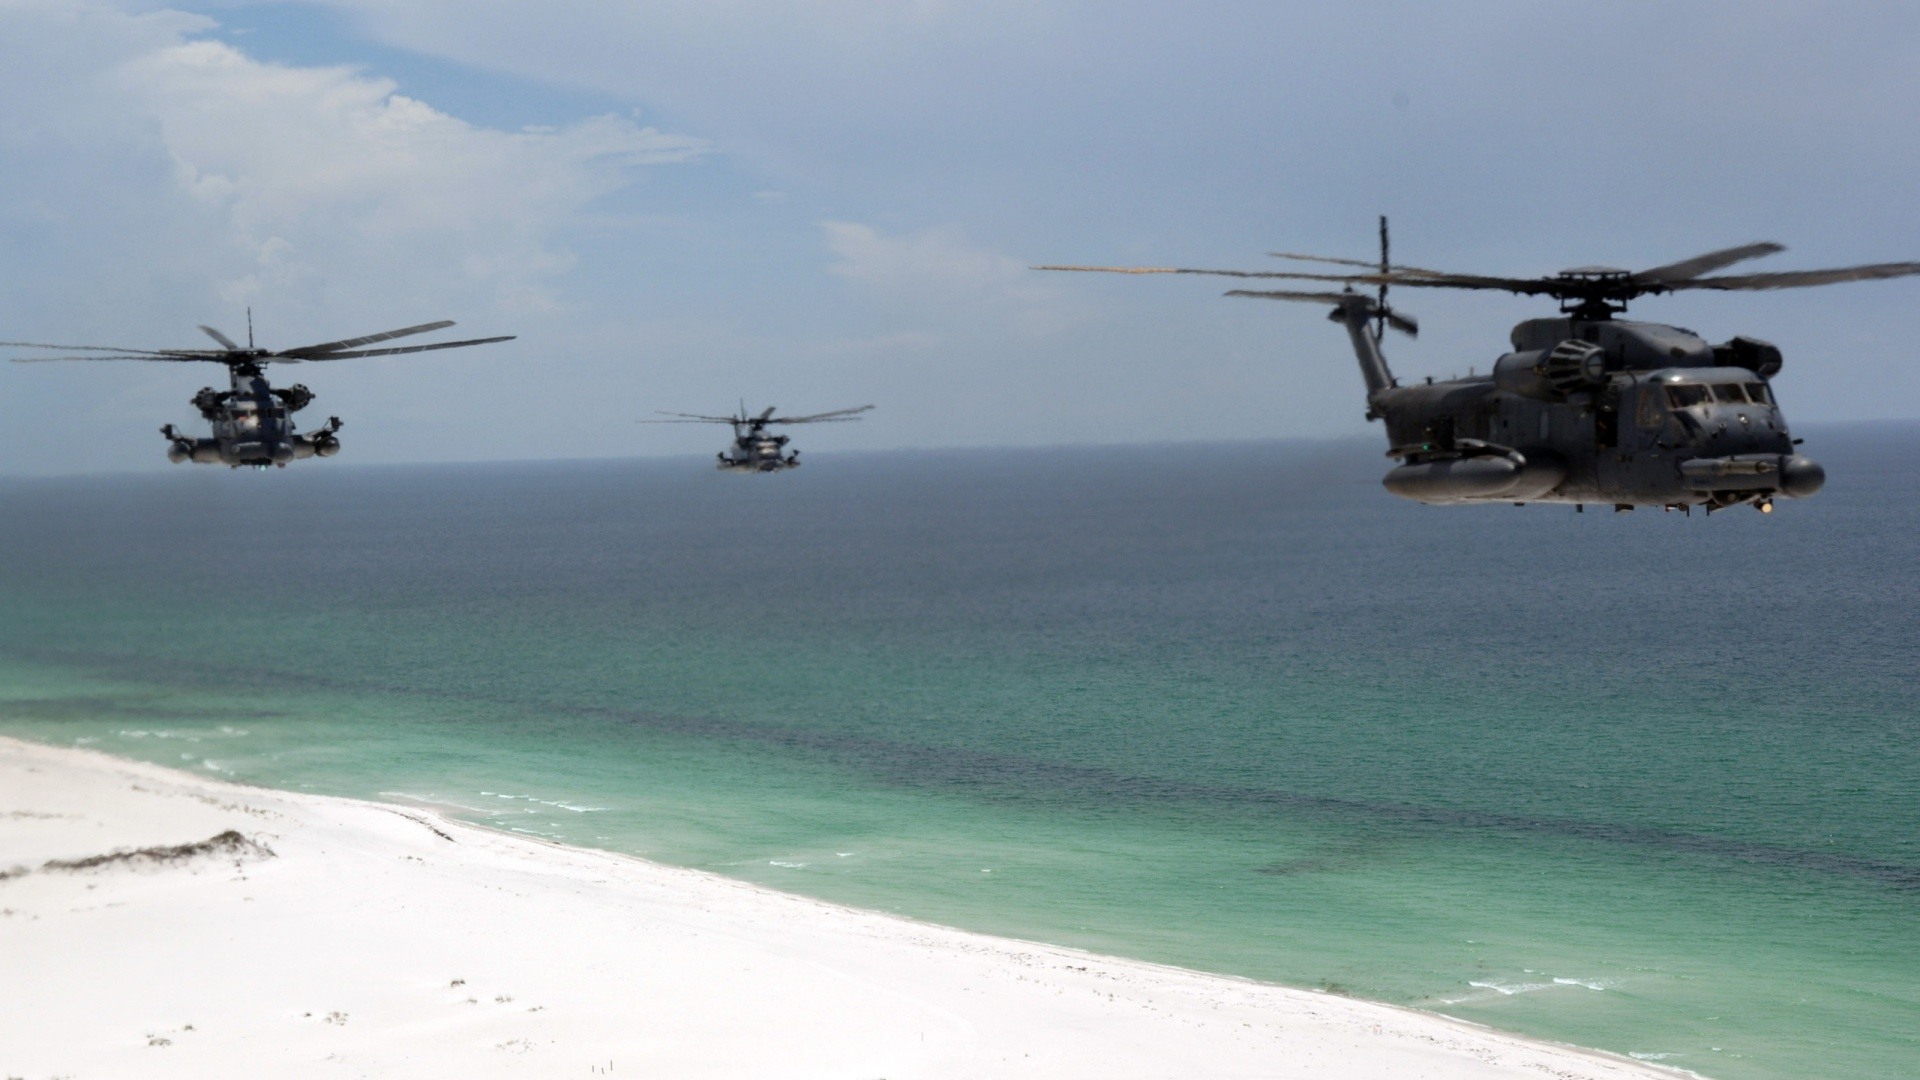 1920x1080 Helicopter, beach, choppers